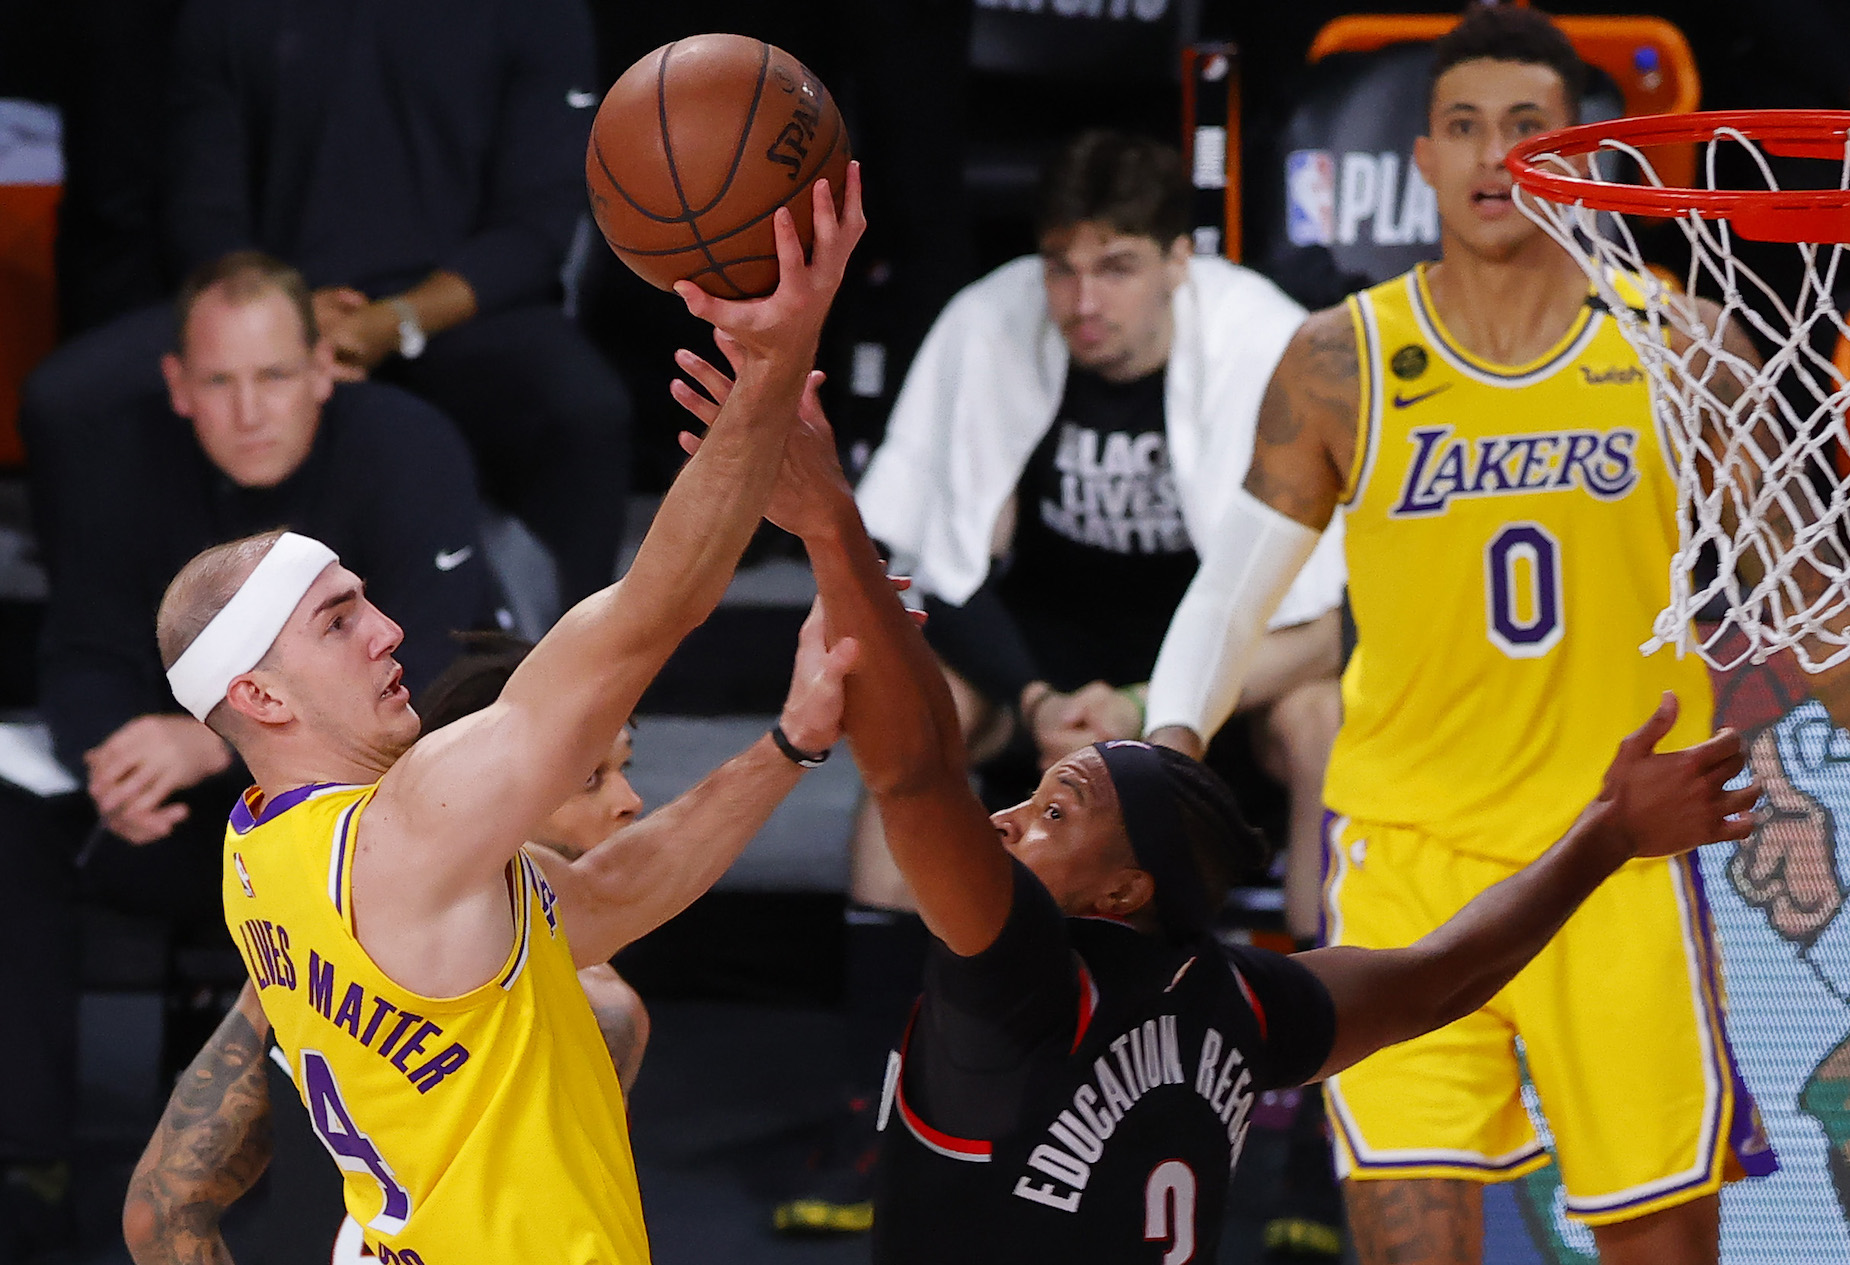 Lakers guard Alex Caruso is more than a fan favorite; he's a surprisingly good player.